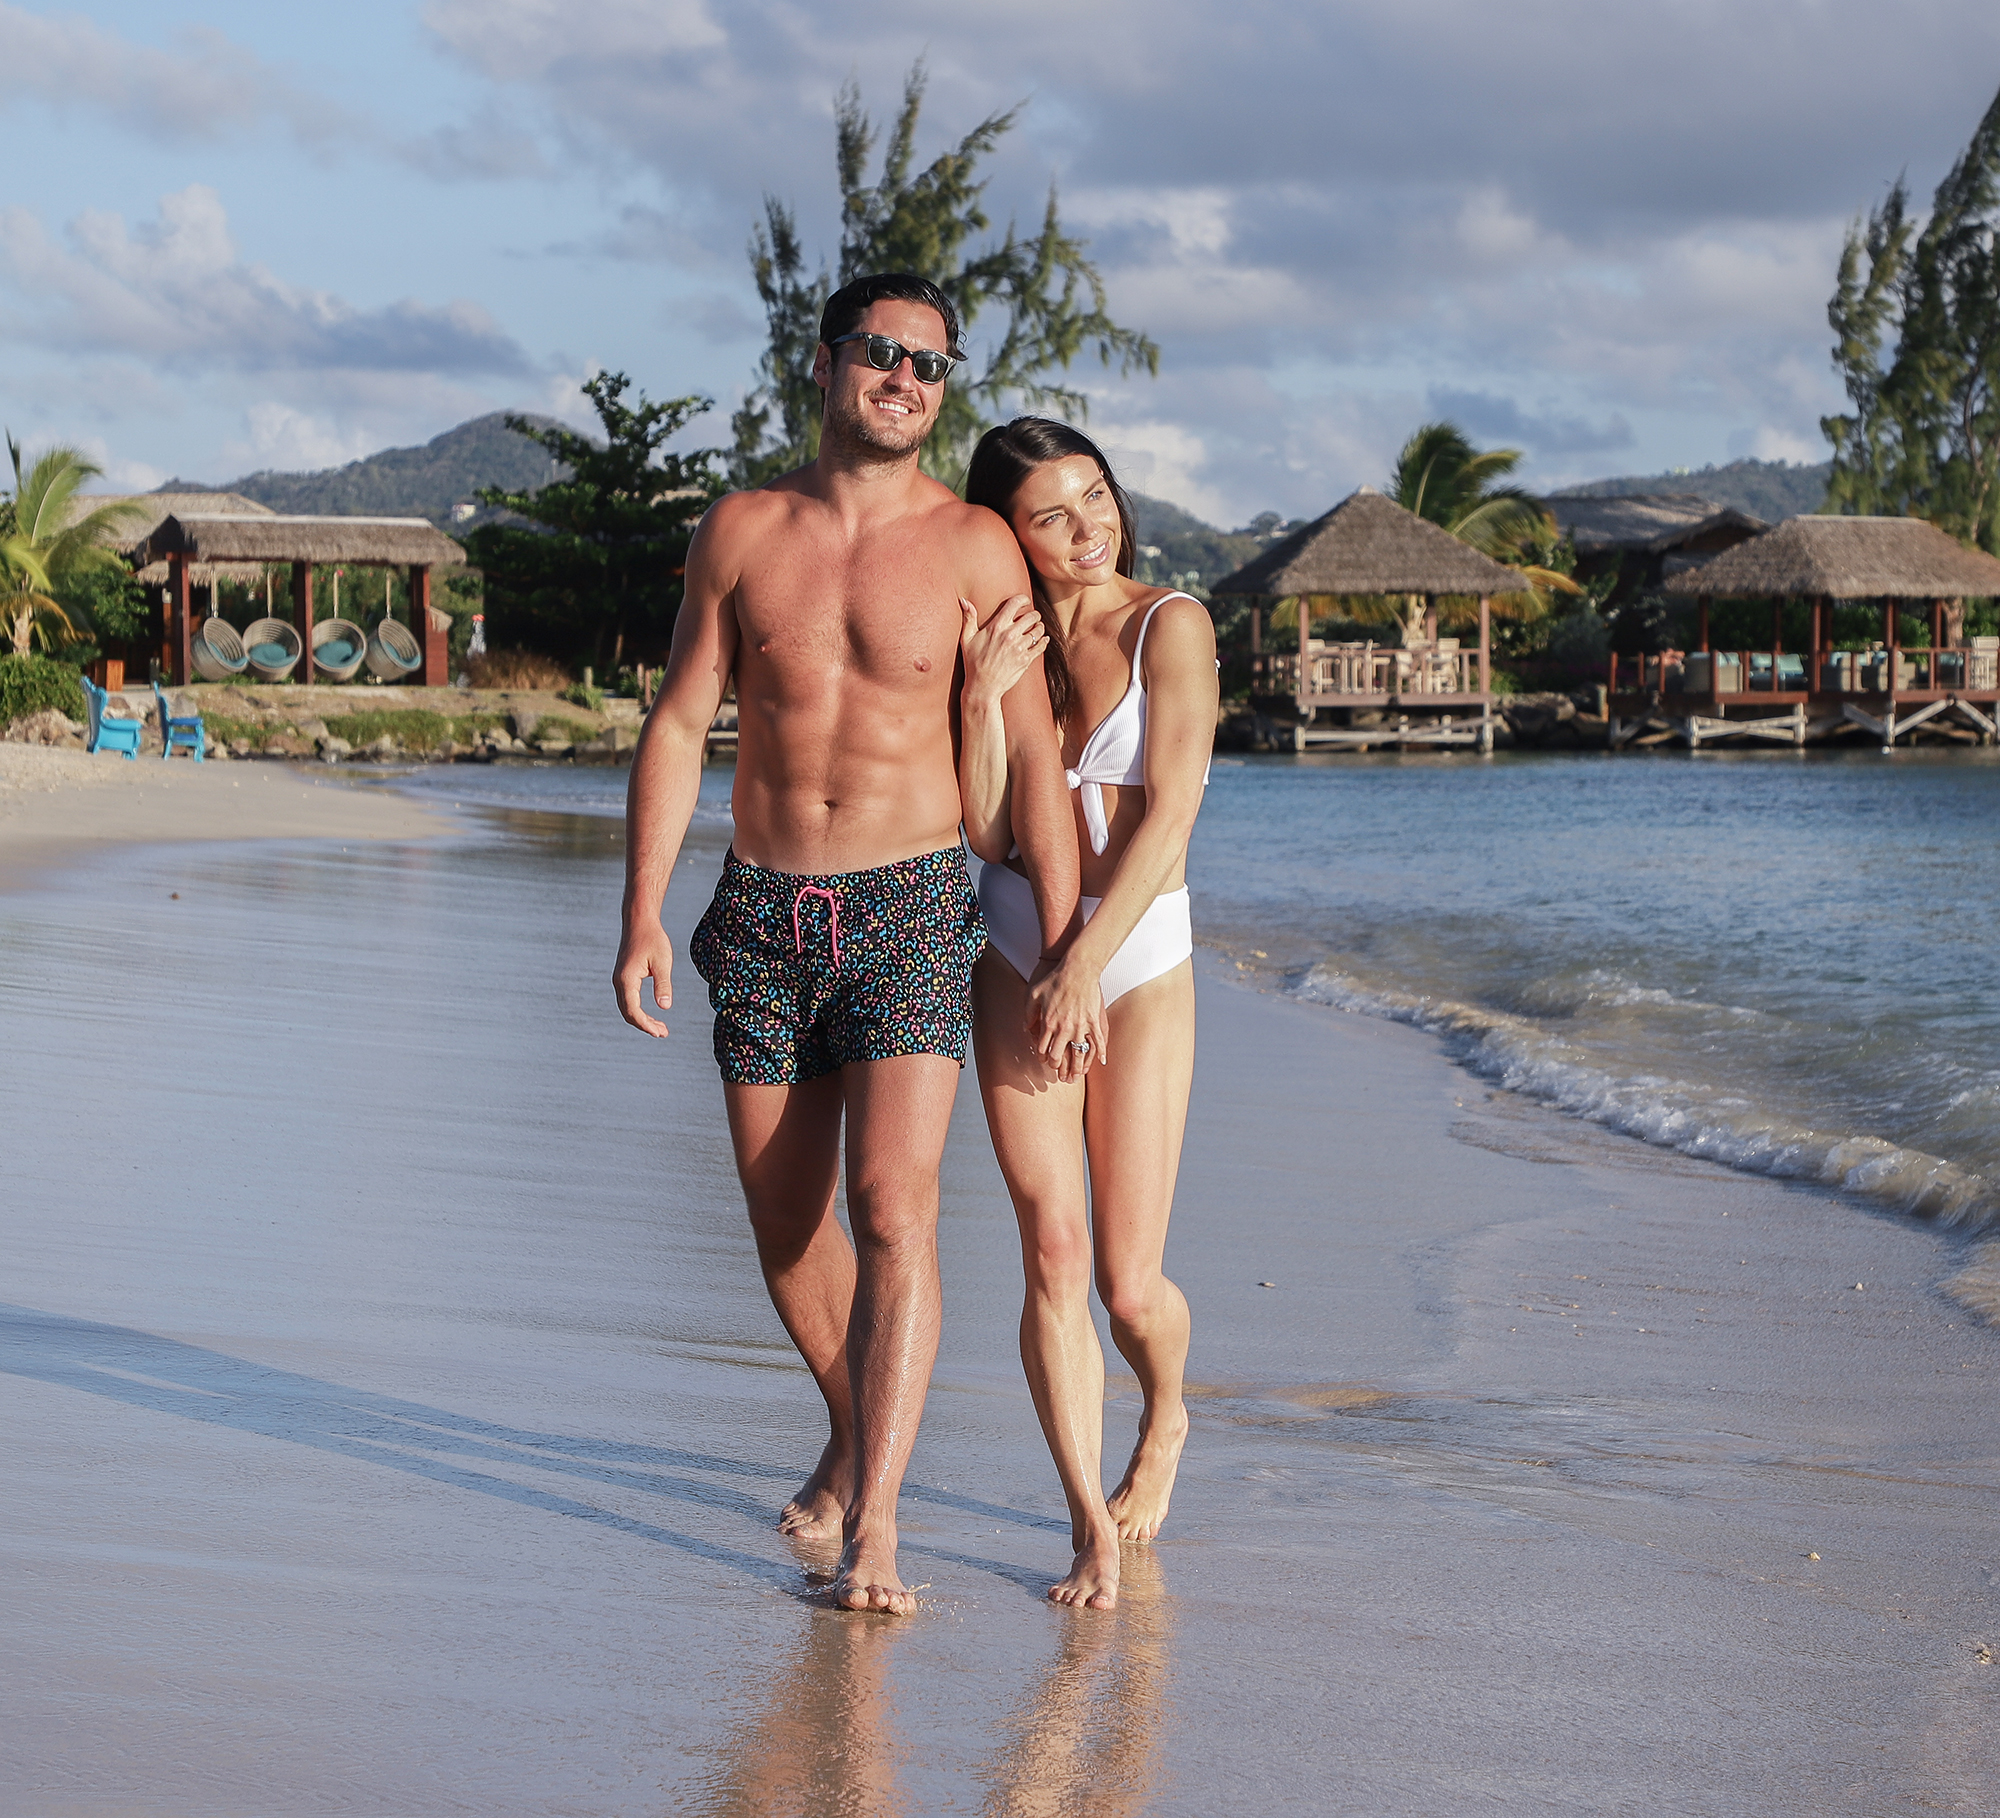 Val Chmerkovskiy Jenna Johnson Honeymoon - Dancing with The Stars champions and newlyweds Val Chmerkovskiy & Jenna Johnson spend their honeymoon at the luxurious Sandals Grande St. Lucian resort. (MUST INCLUDE Sandals Grande St. Lucian resort)